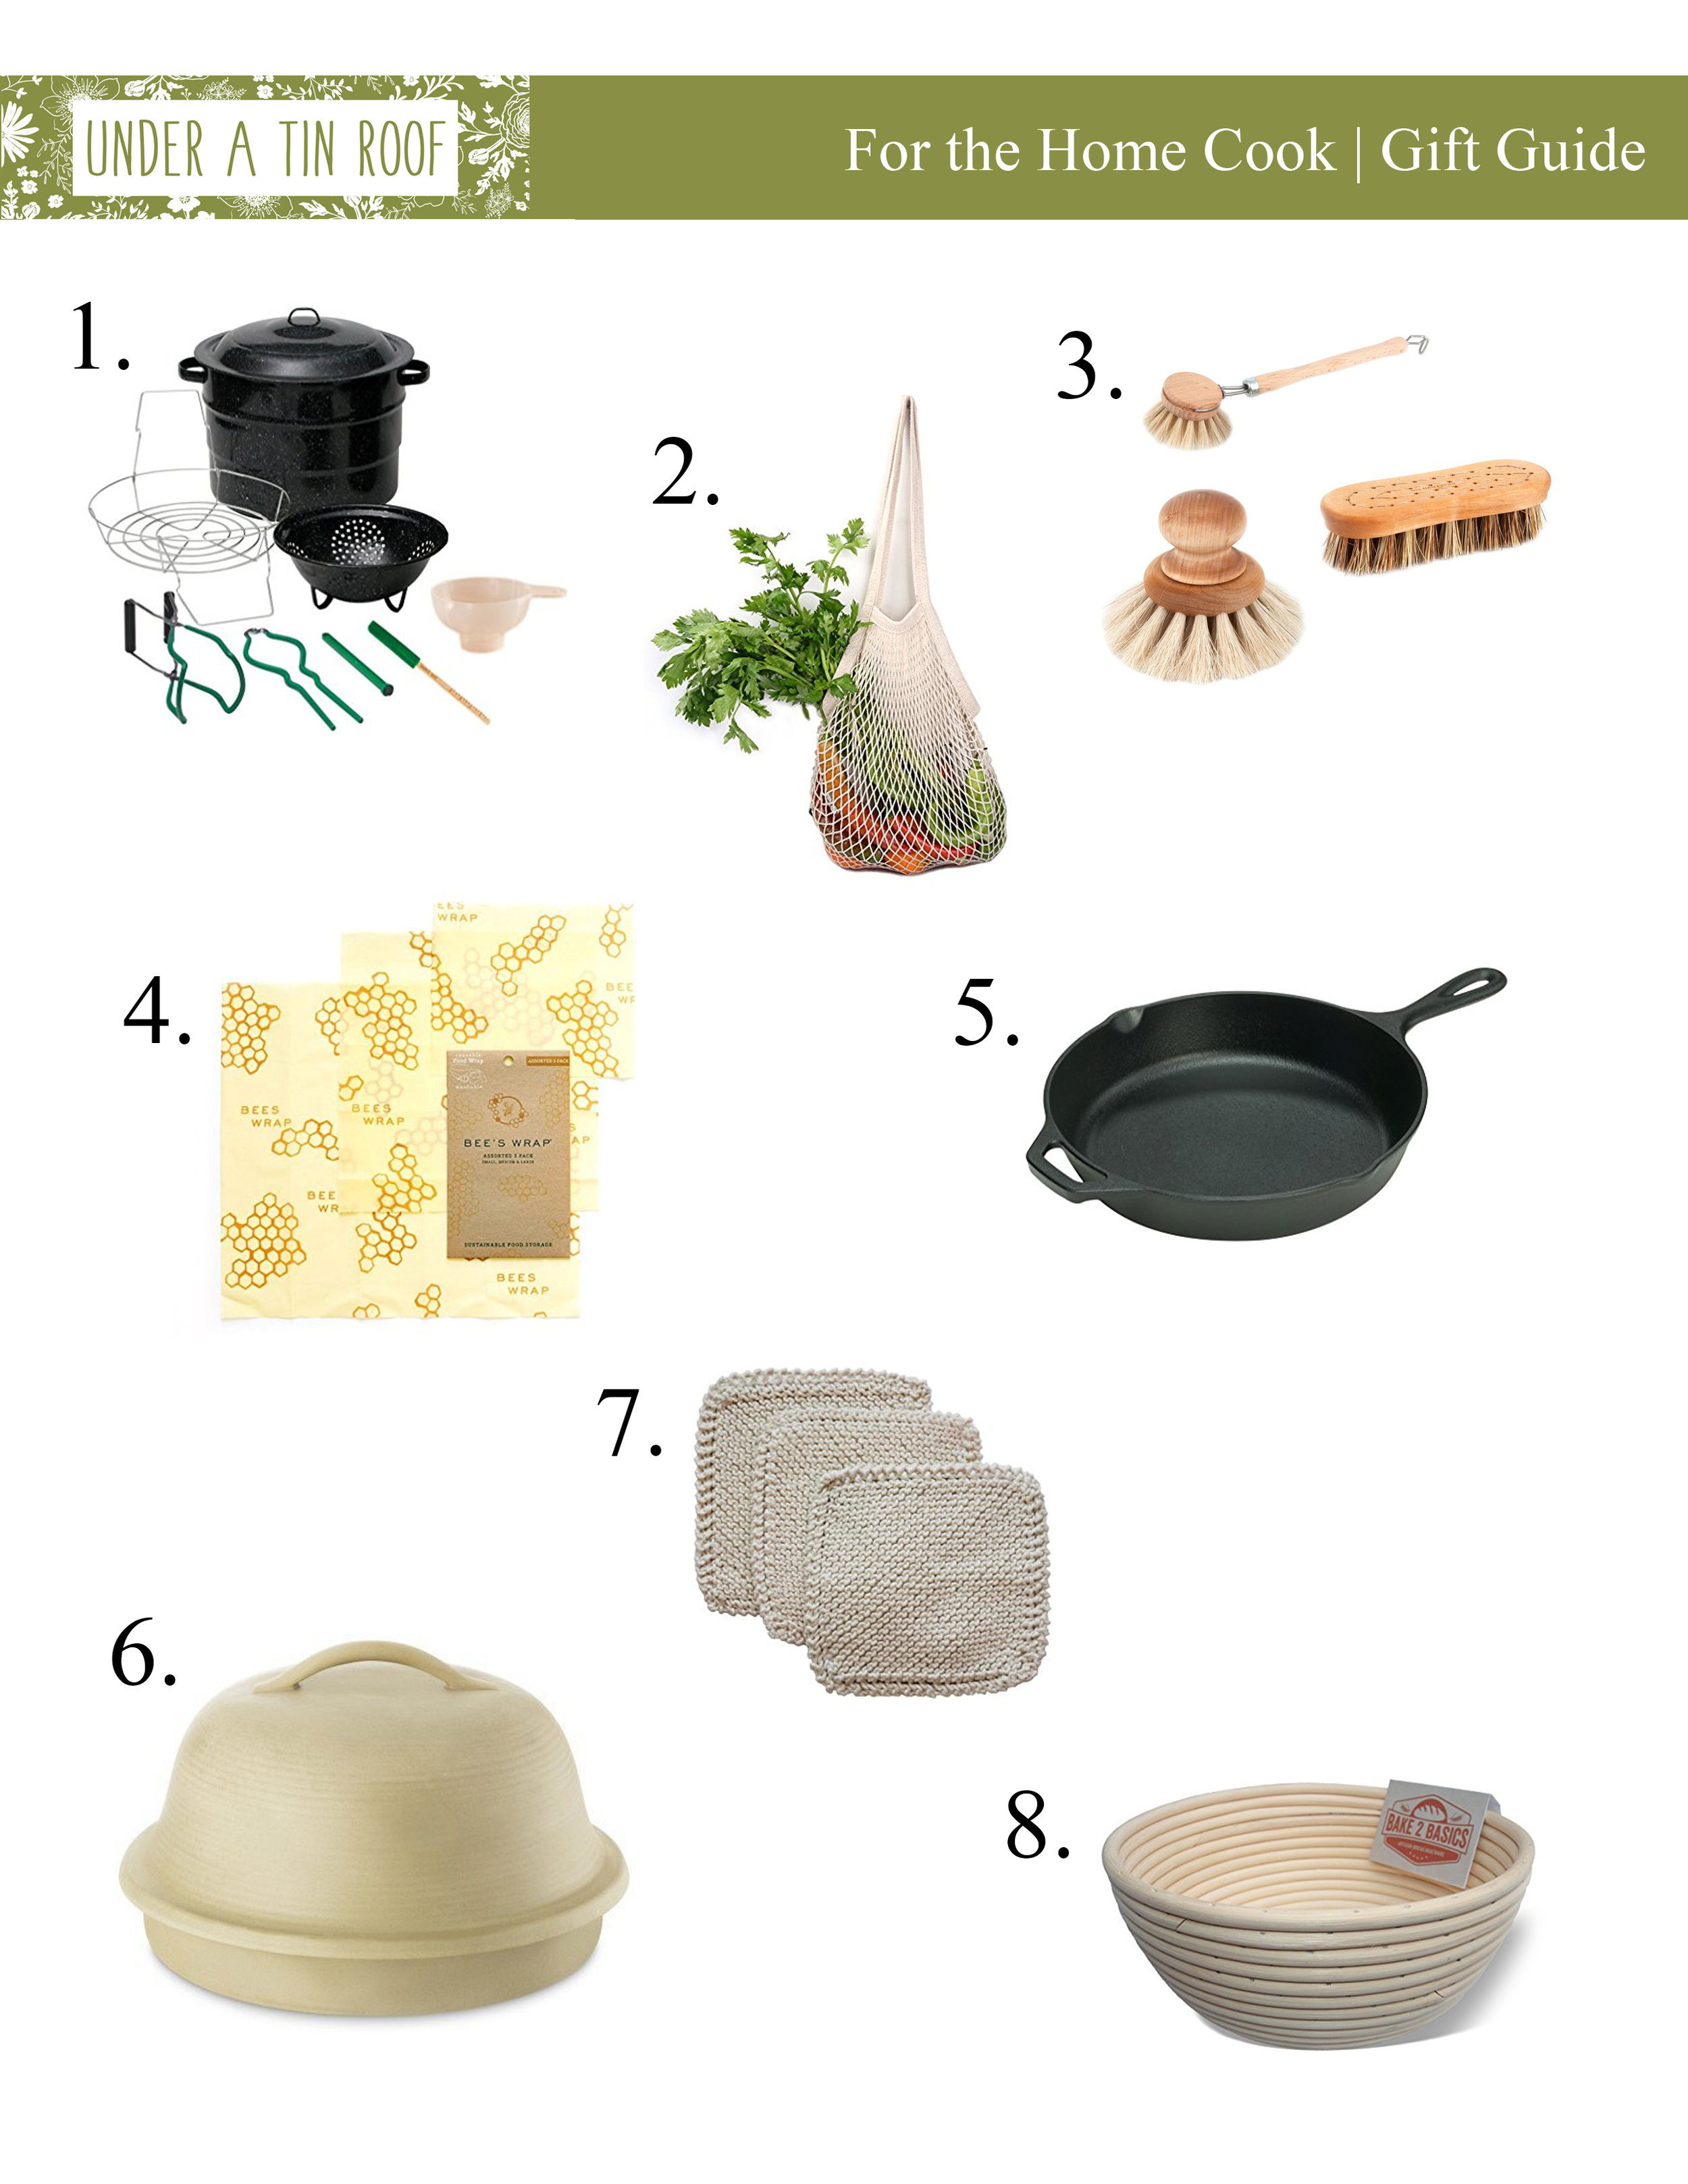 Gifts for the Home Cook - Under A Tin Roof Blog